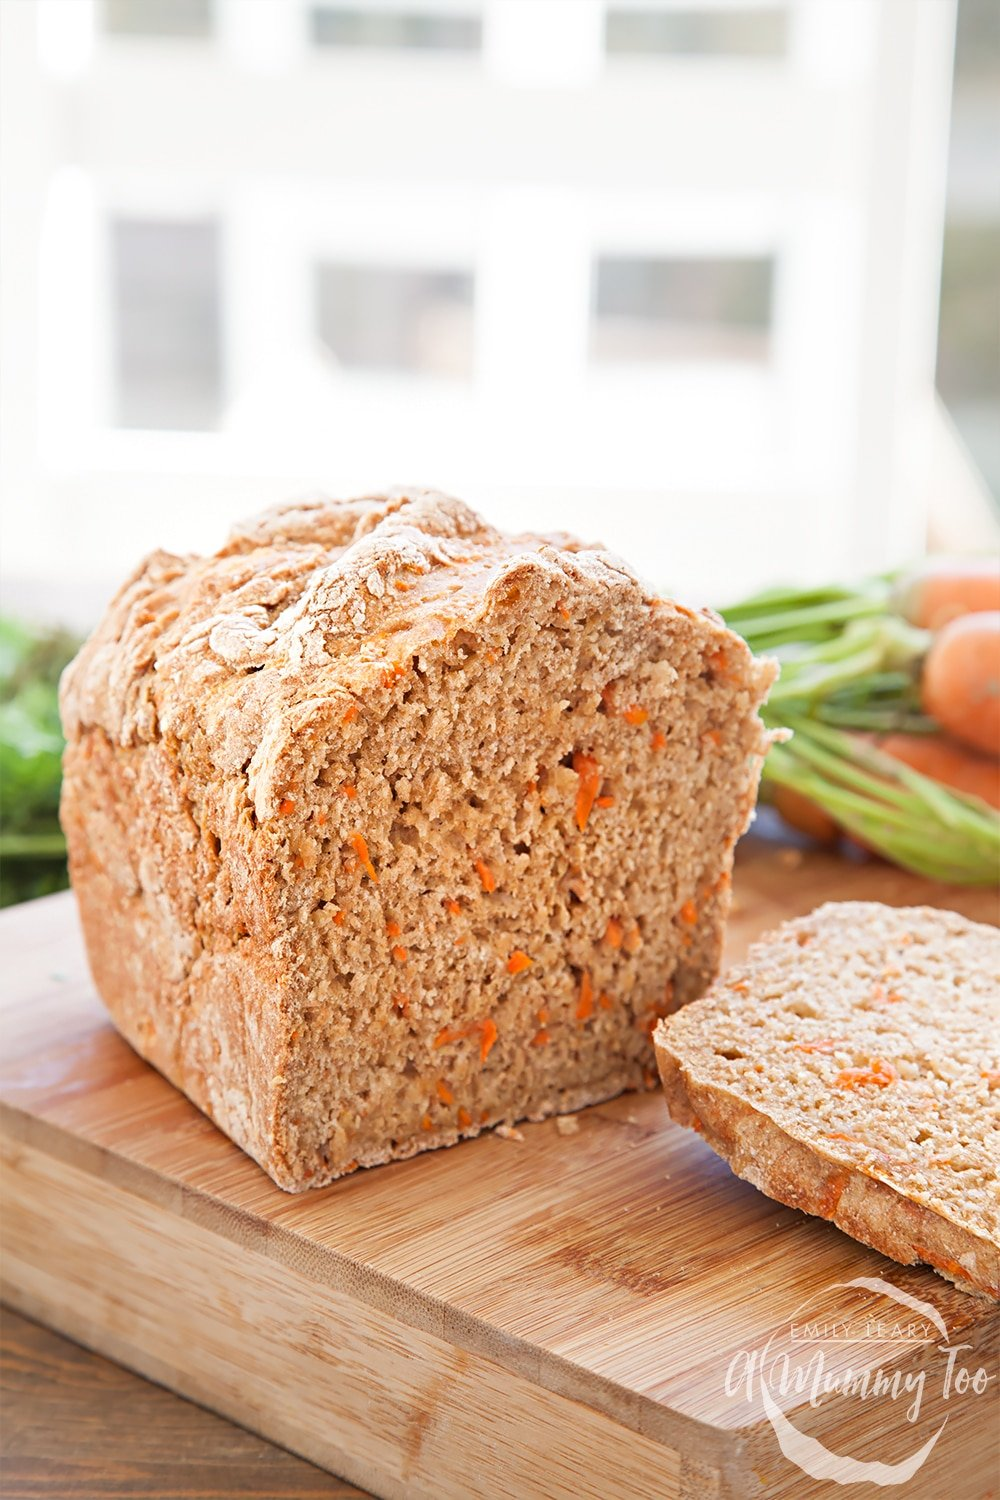 Slice the freshly baked carrot soda bread, ready to assemble the home-grown carrot soda bread egg and cress sandwiches